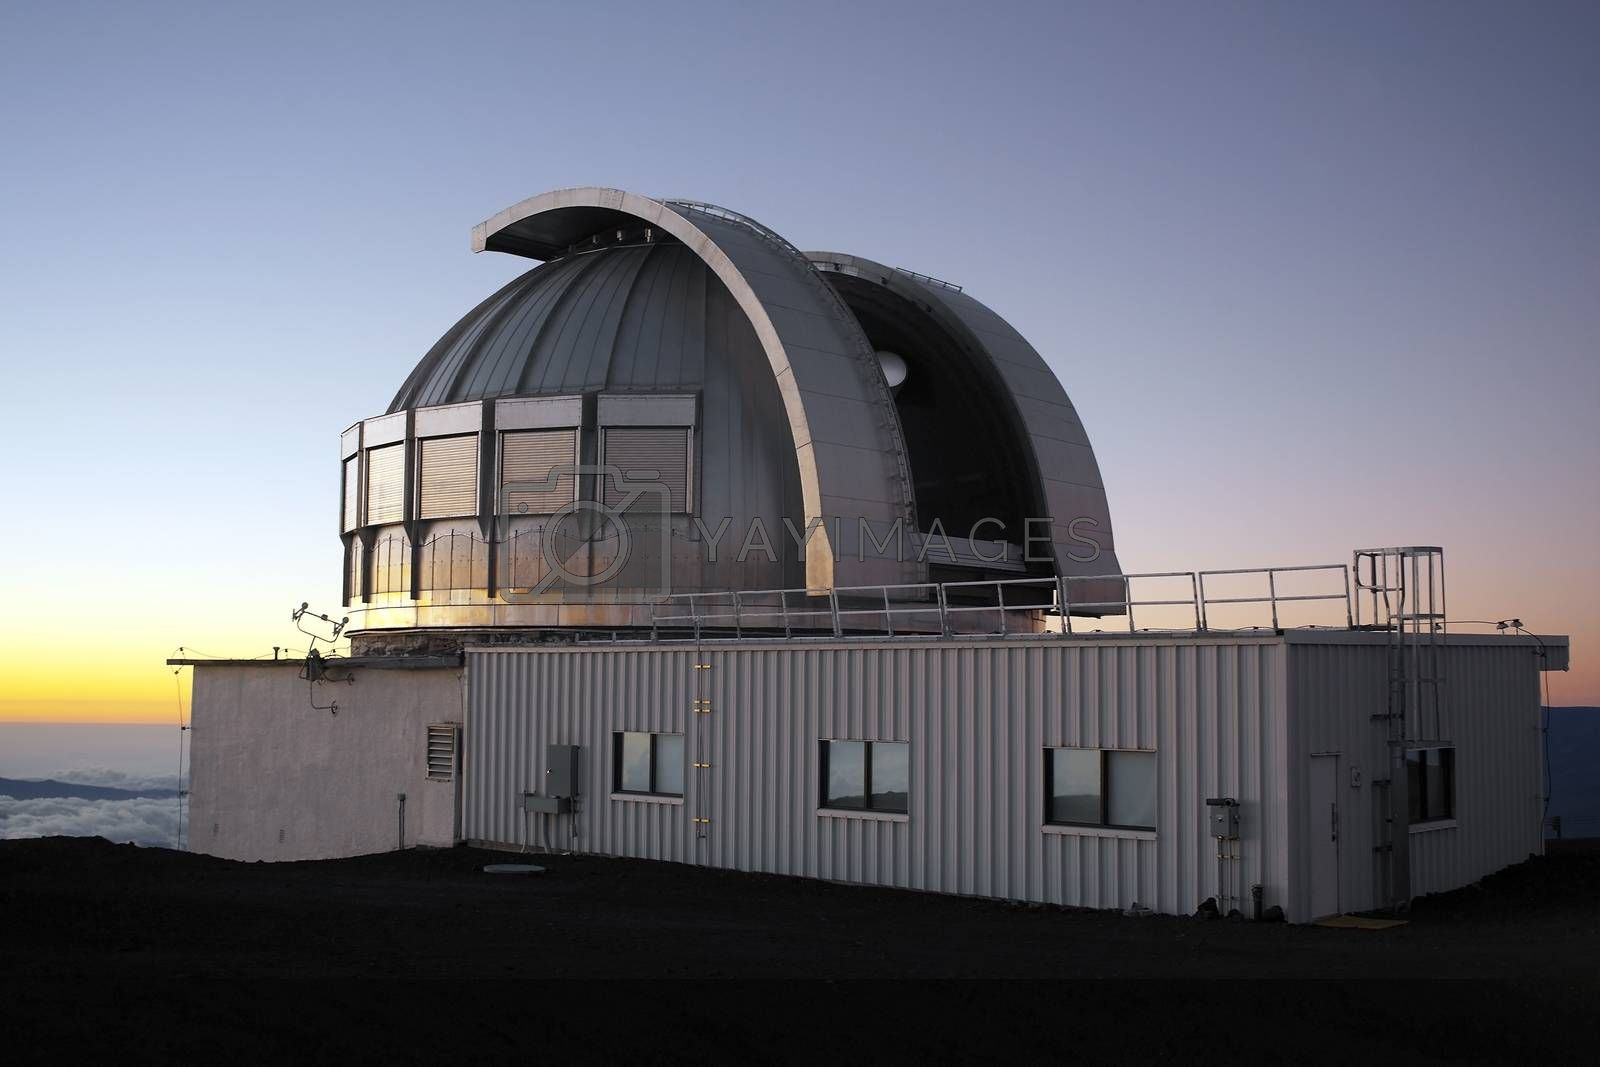 Royalty free image of Astronomical Observatory - Hawaii - USA by SteveAllenPhoto